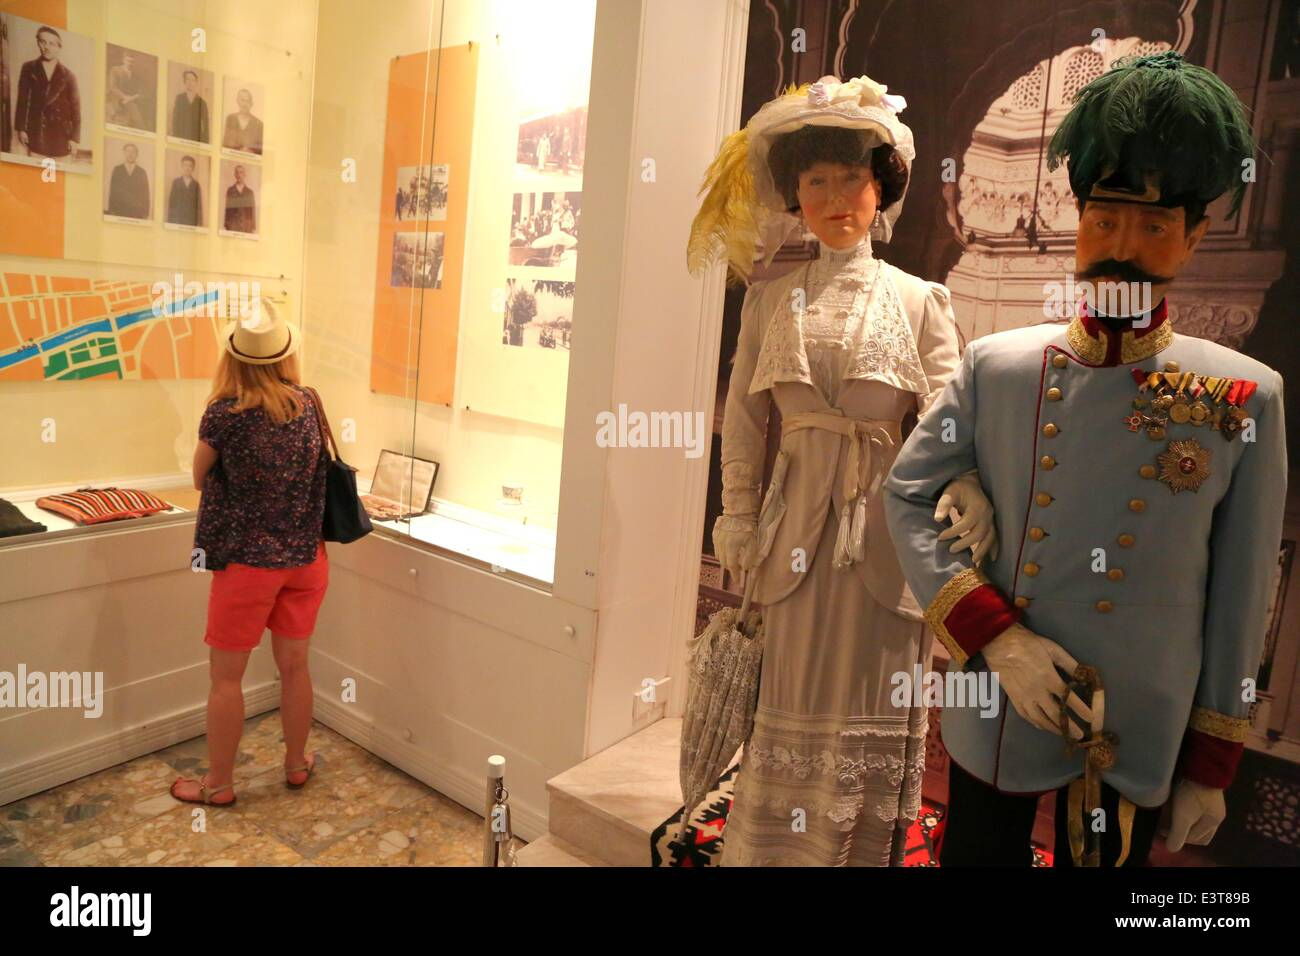 Sarajevo 28th June 1914 A Tourist Watches Exhibits In The